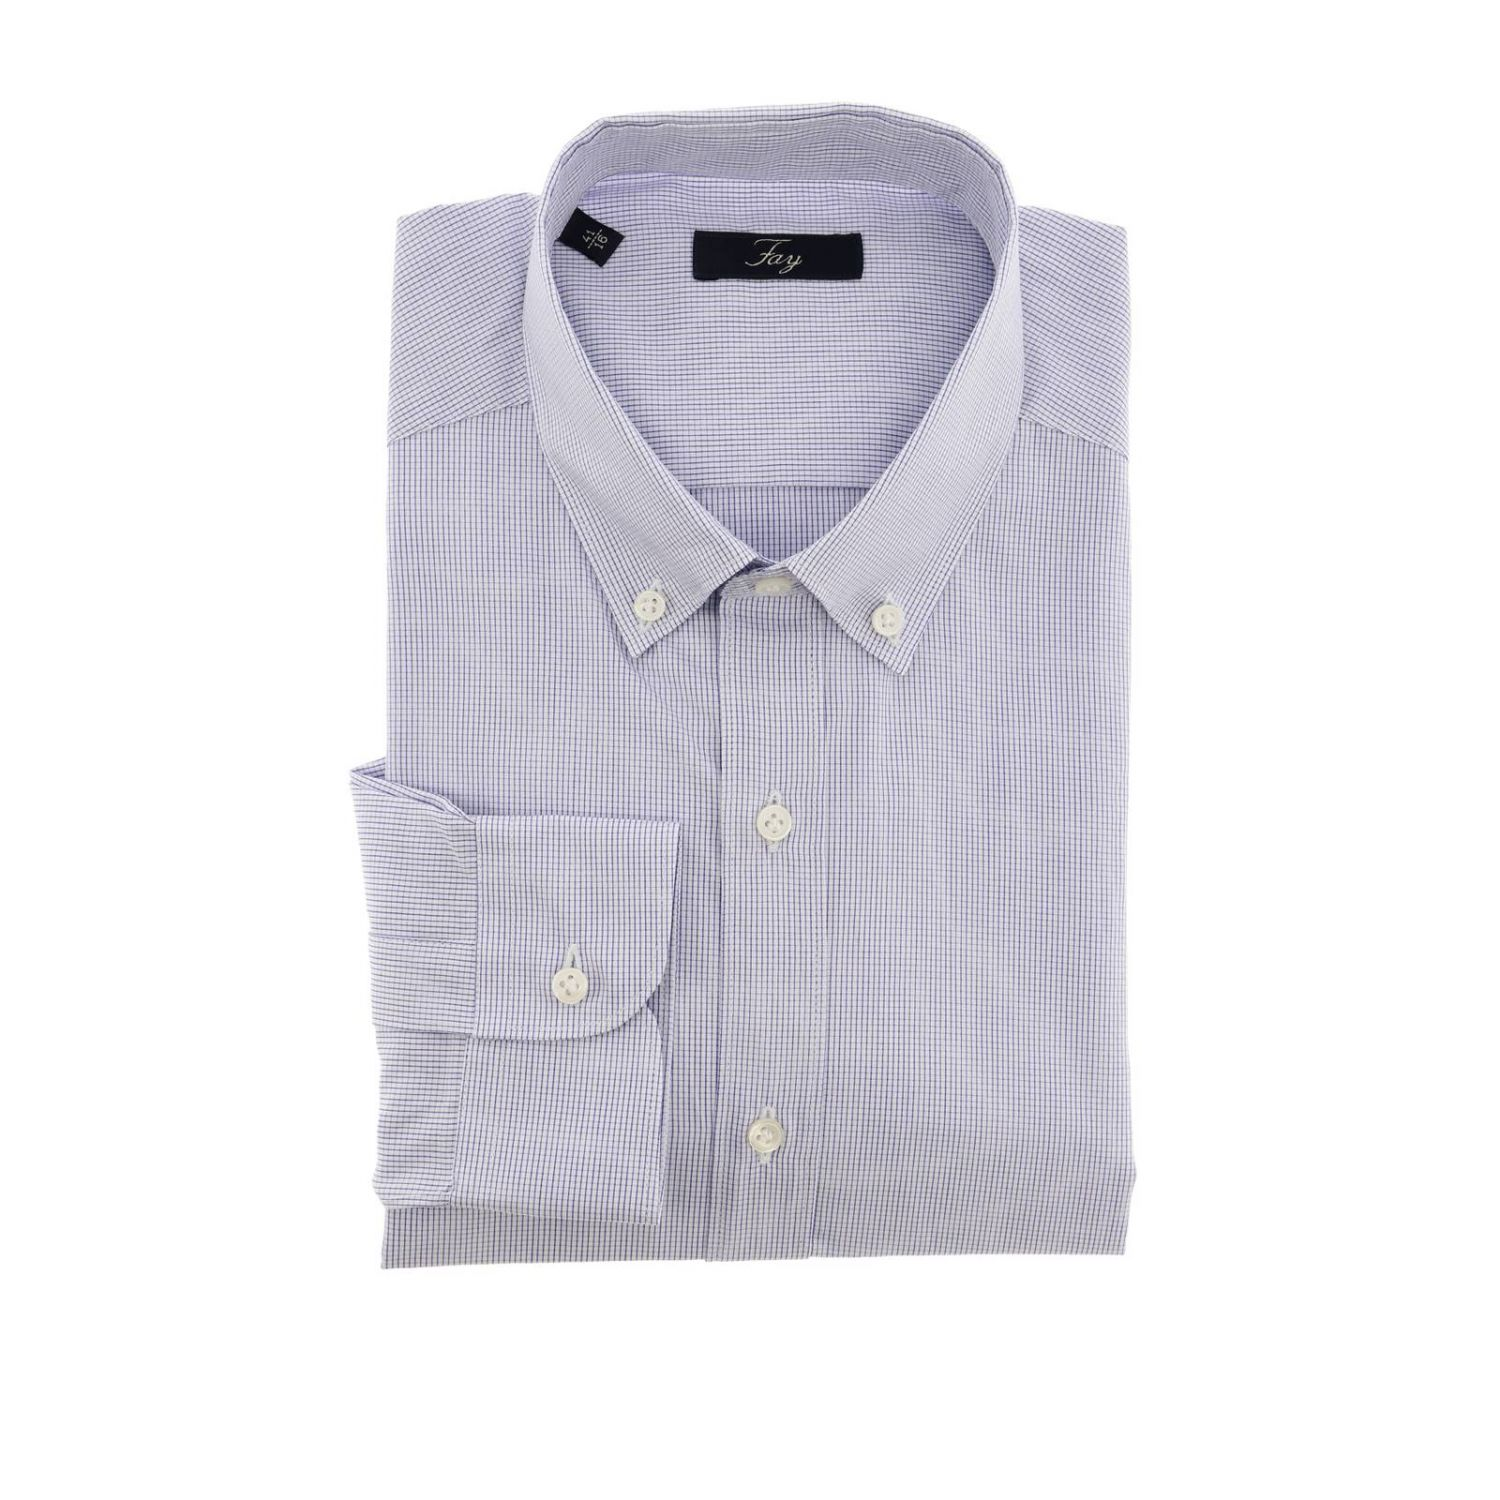 Camicia Fay a micro fantasia con collo button down azzurro 1